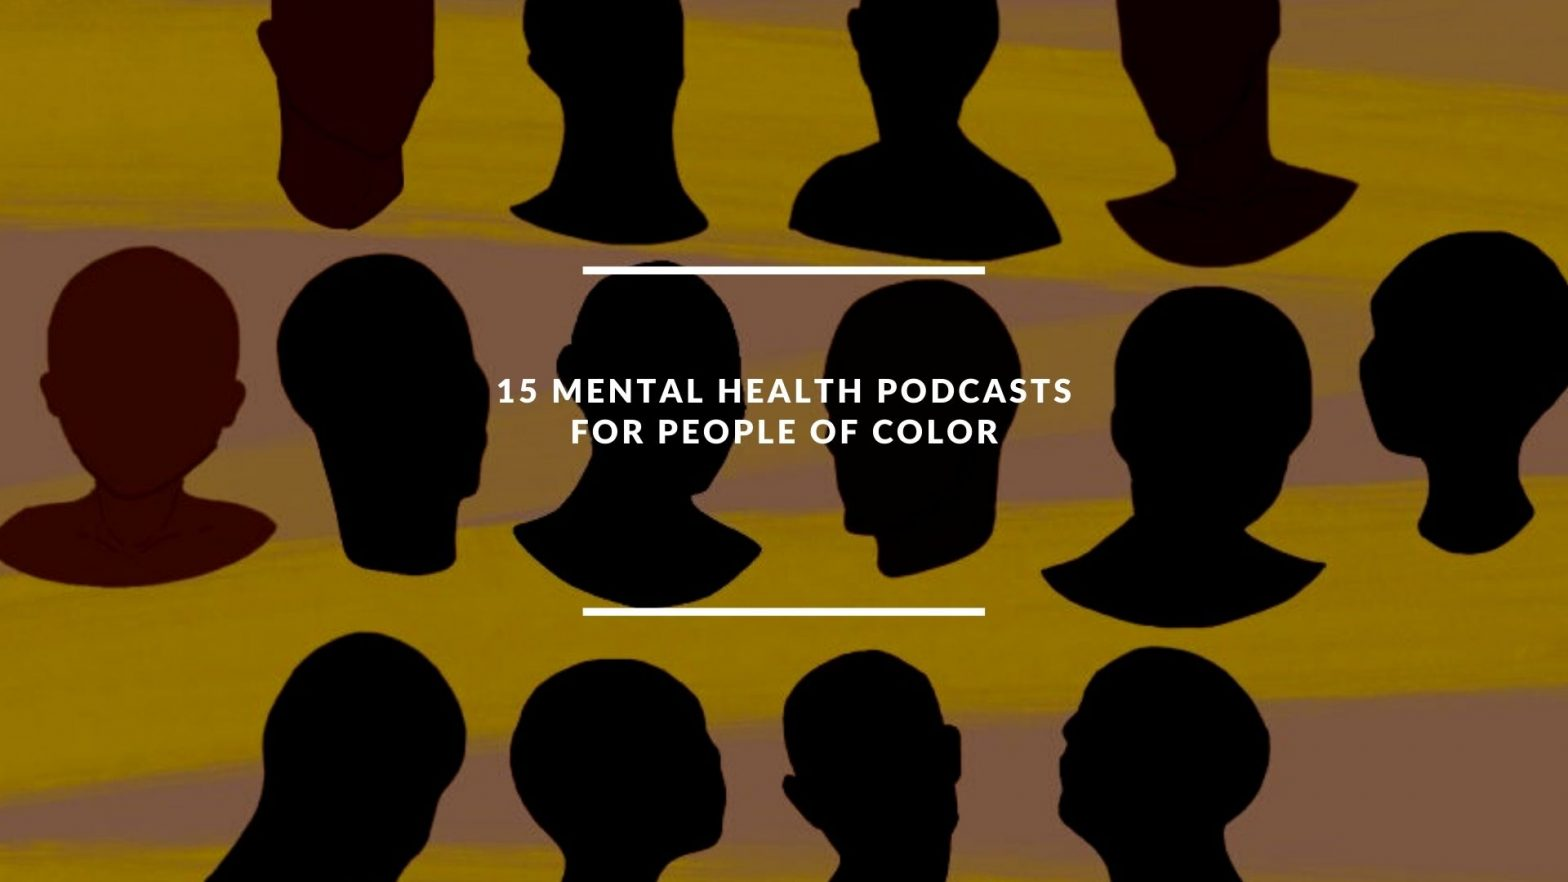 15 mental health podcasts for people of color